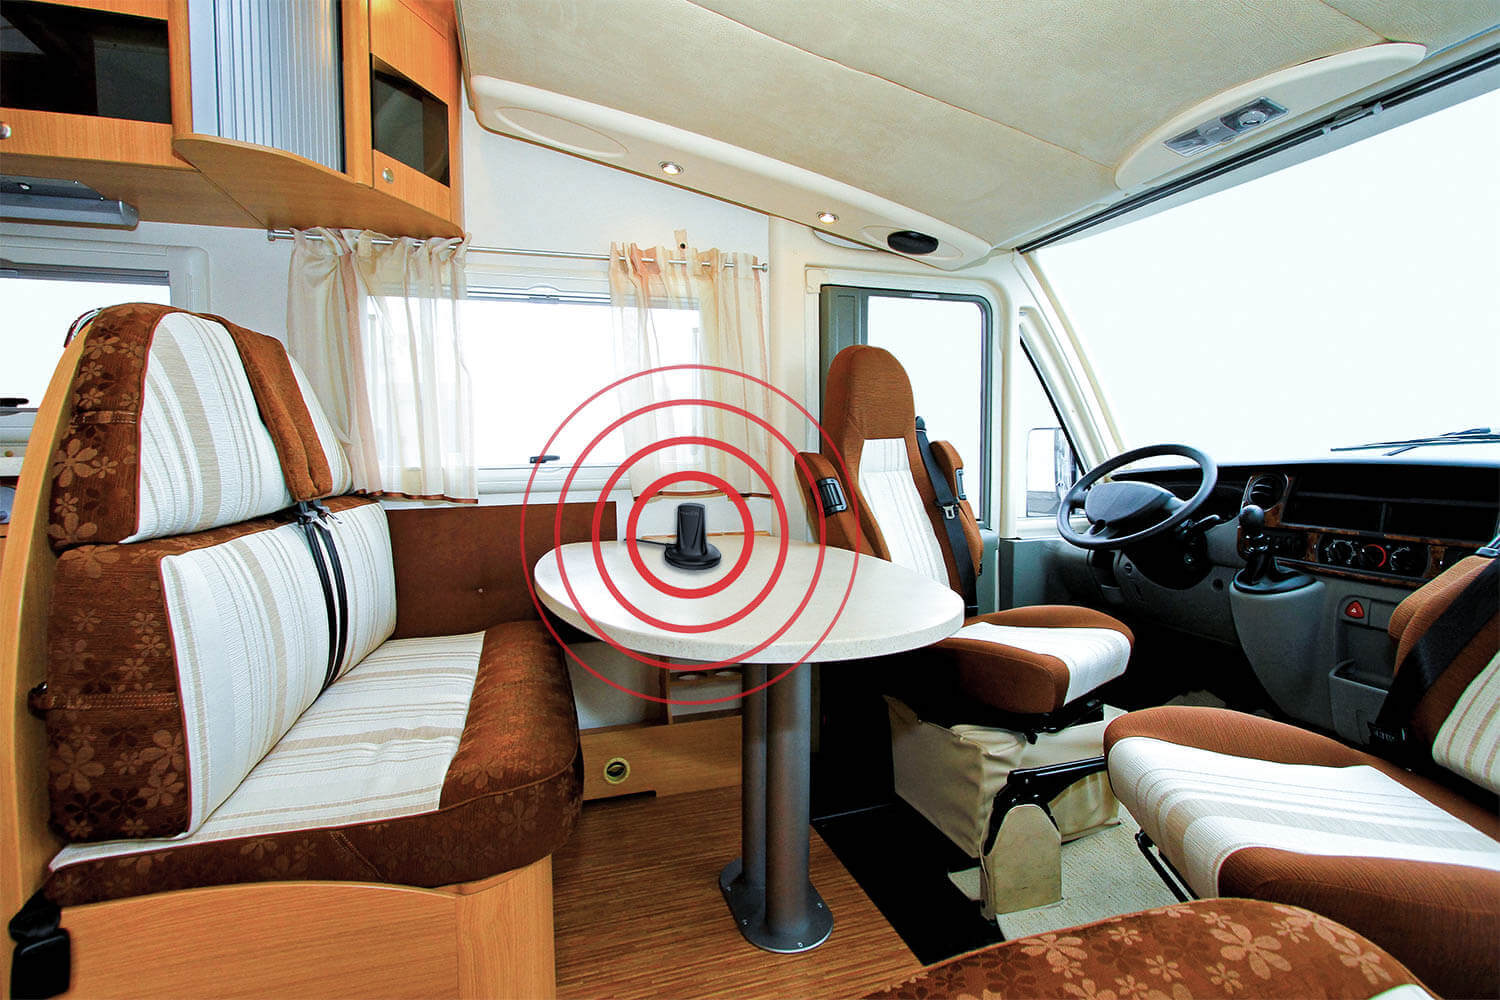 HiBoost Cell phone signal booster for RV-indoor antenna